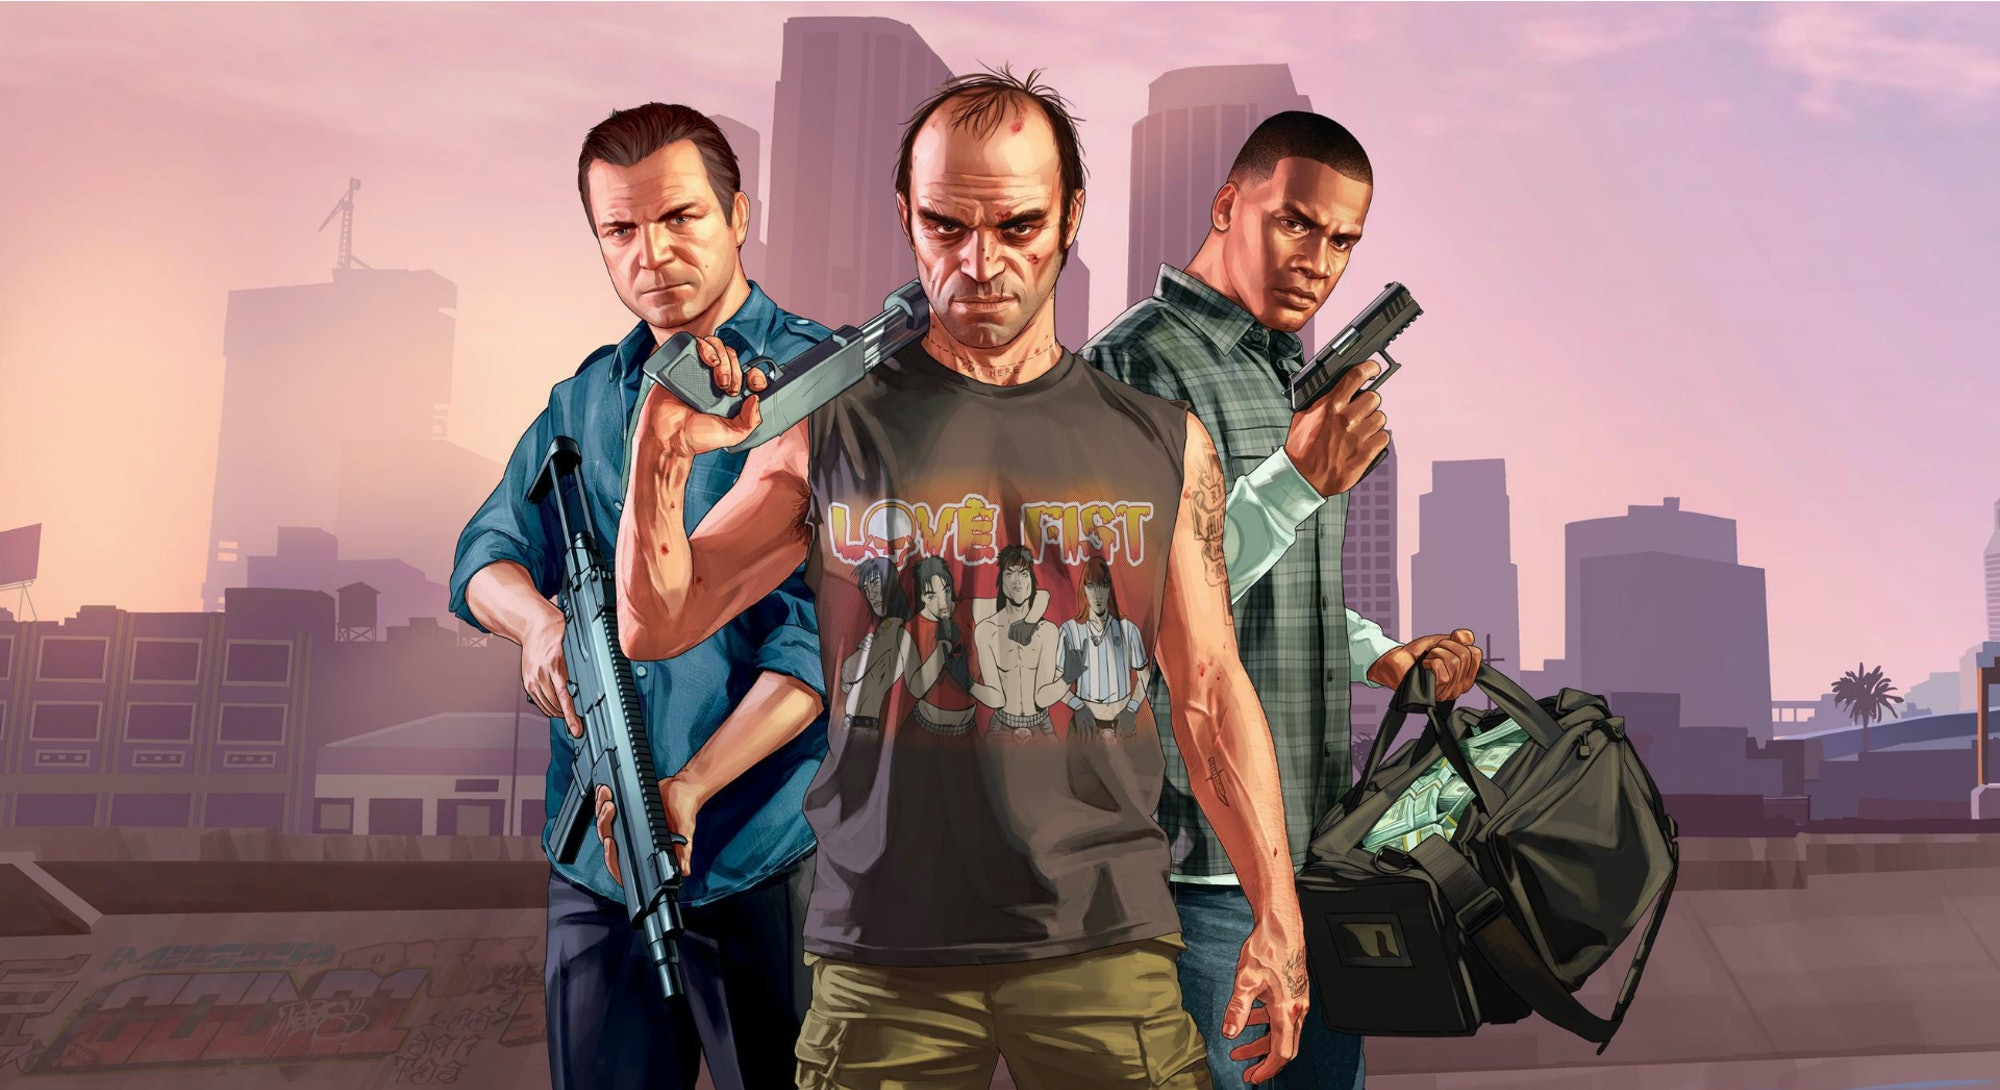 illustration of main characters from Grand Theft Auto V